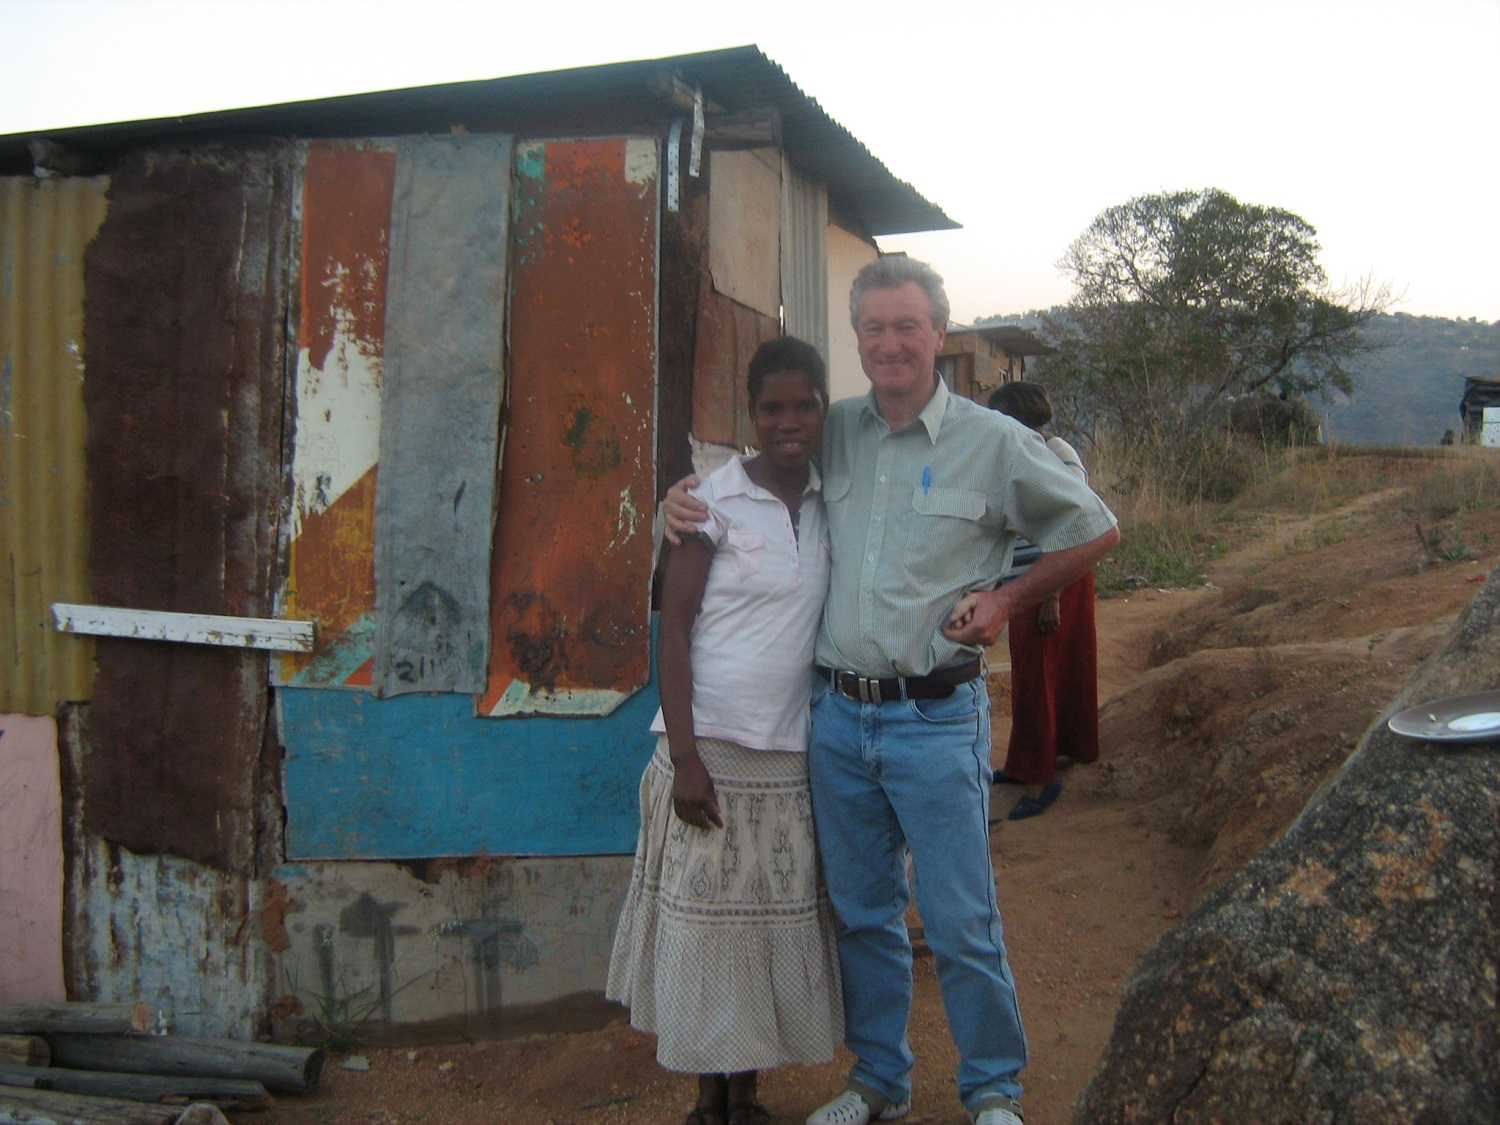 olieve-and-olie-making-a-difference-in-south-africa.JPG